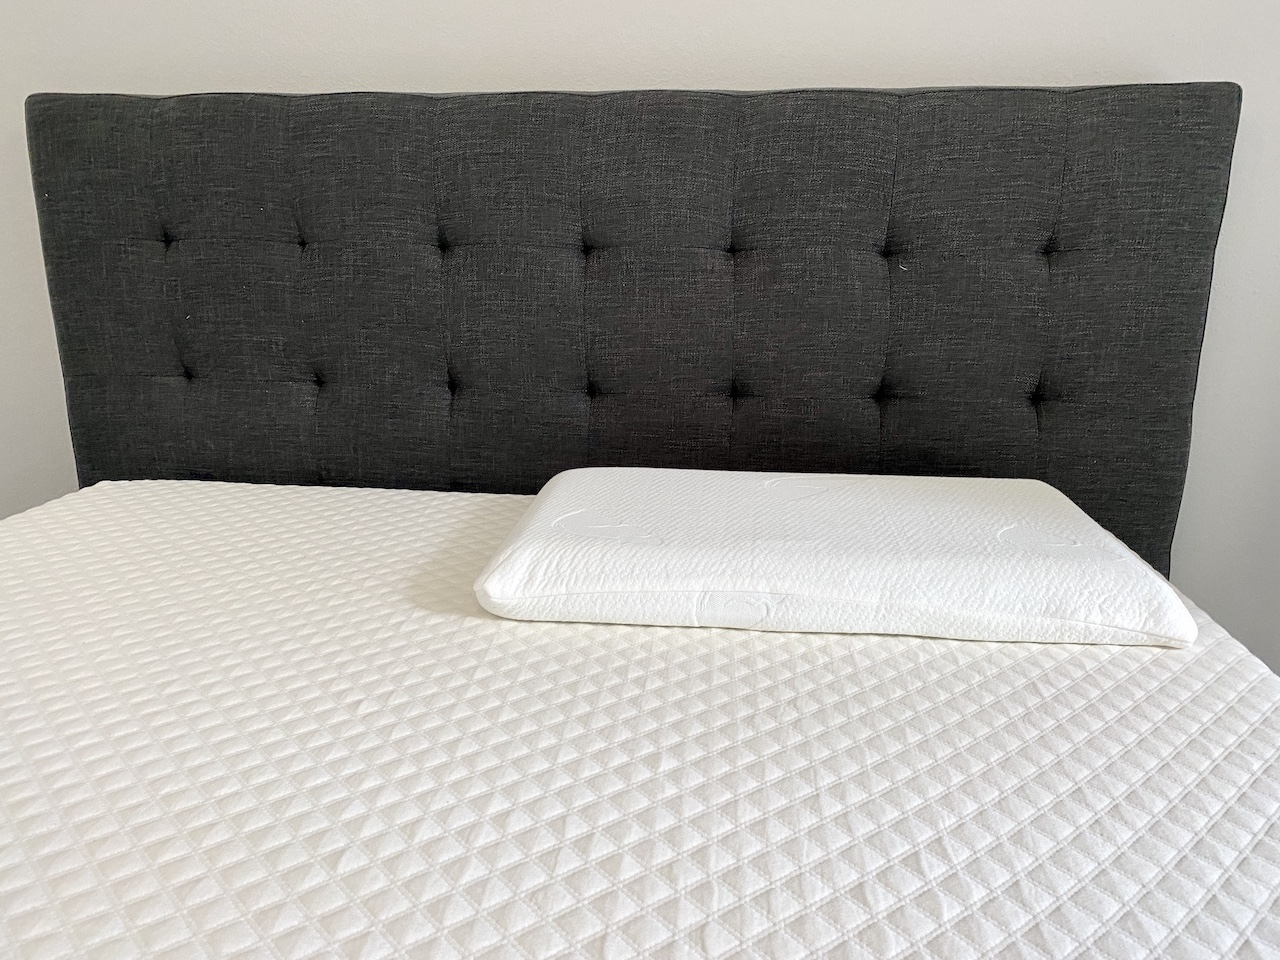 Belly sleeper pillow review